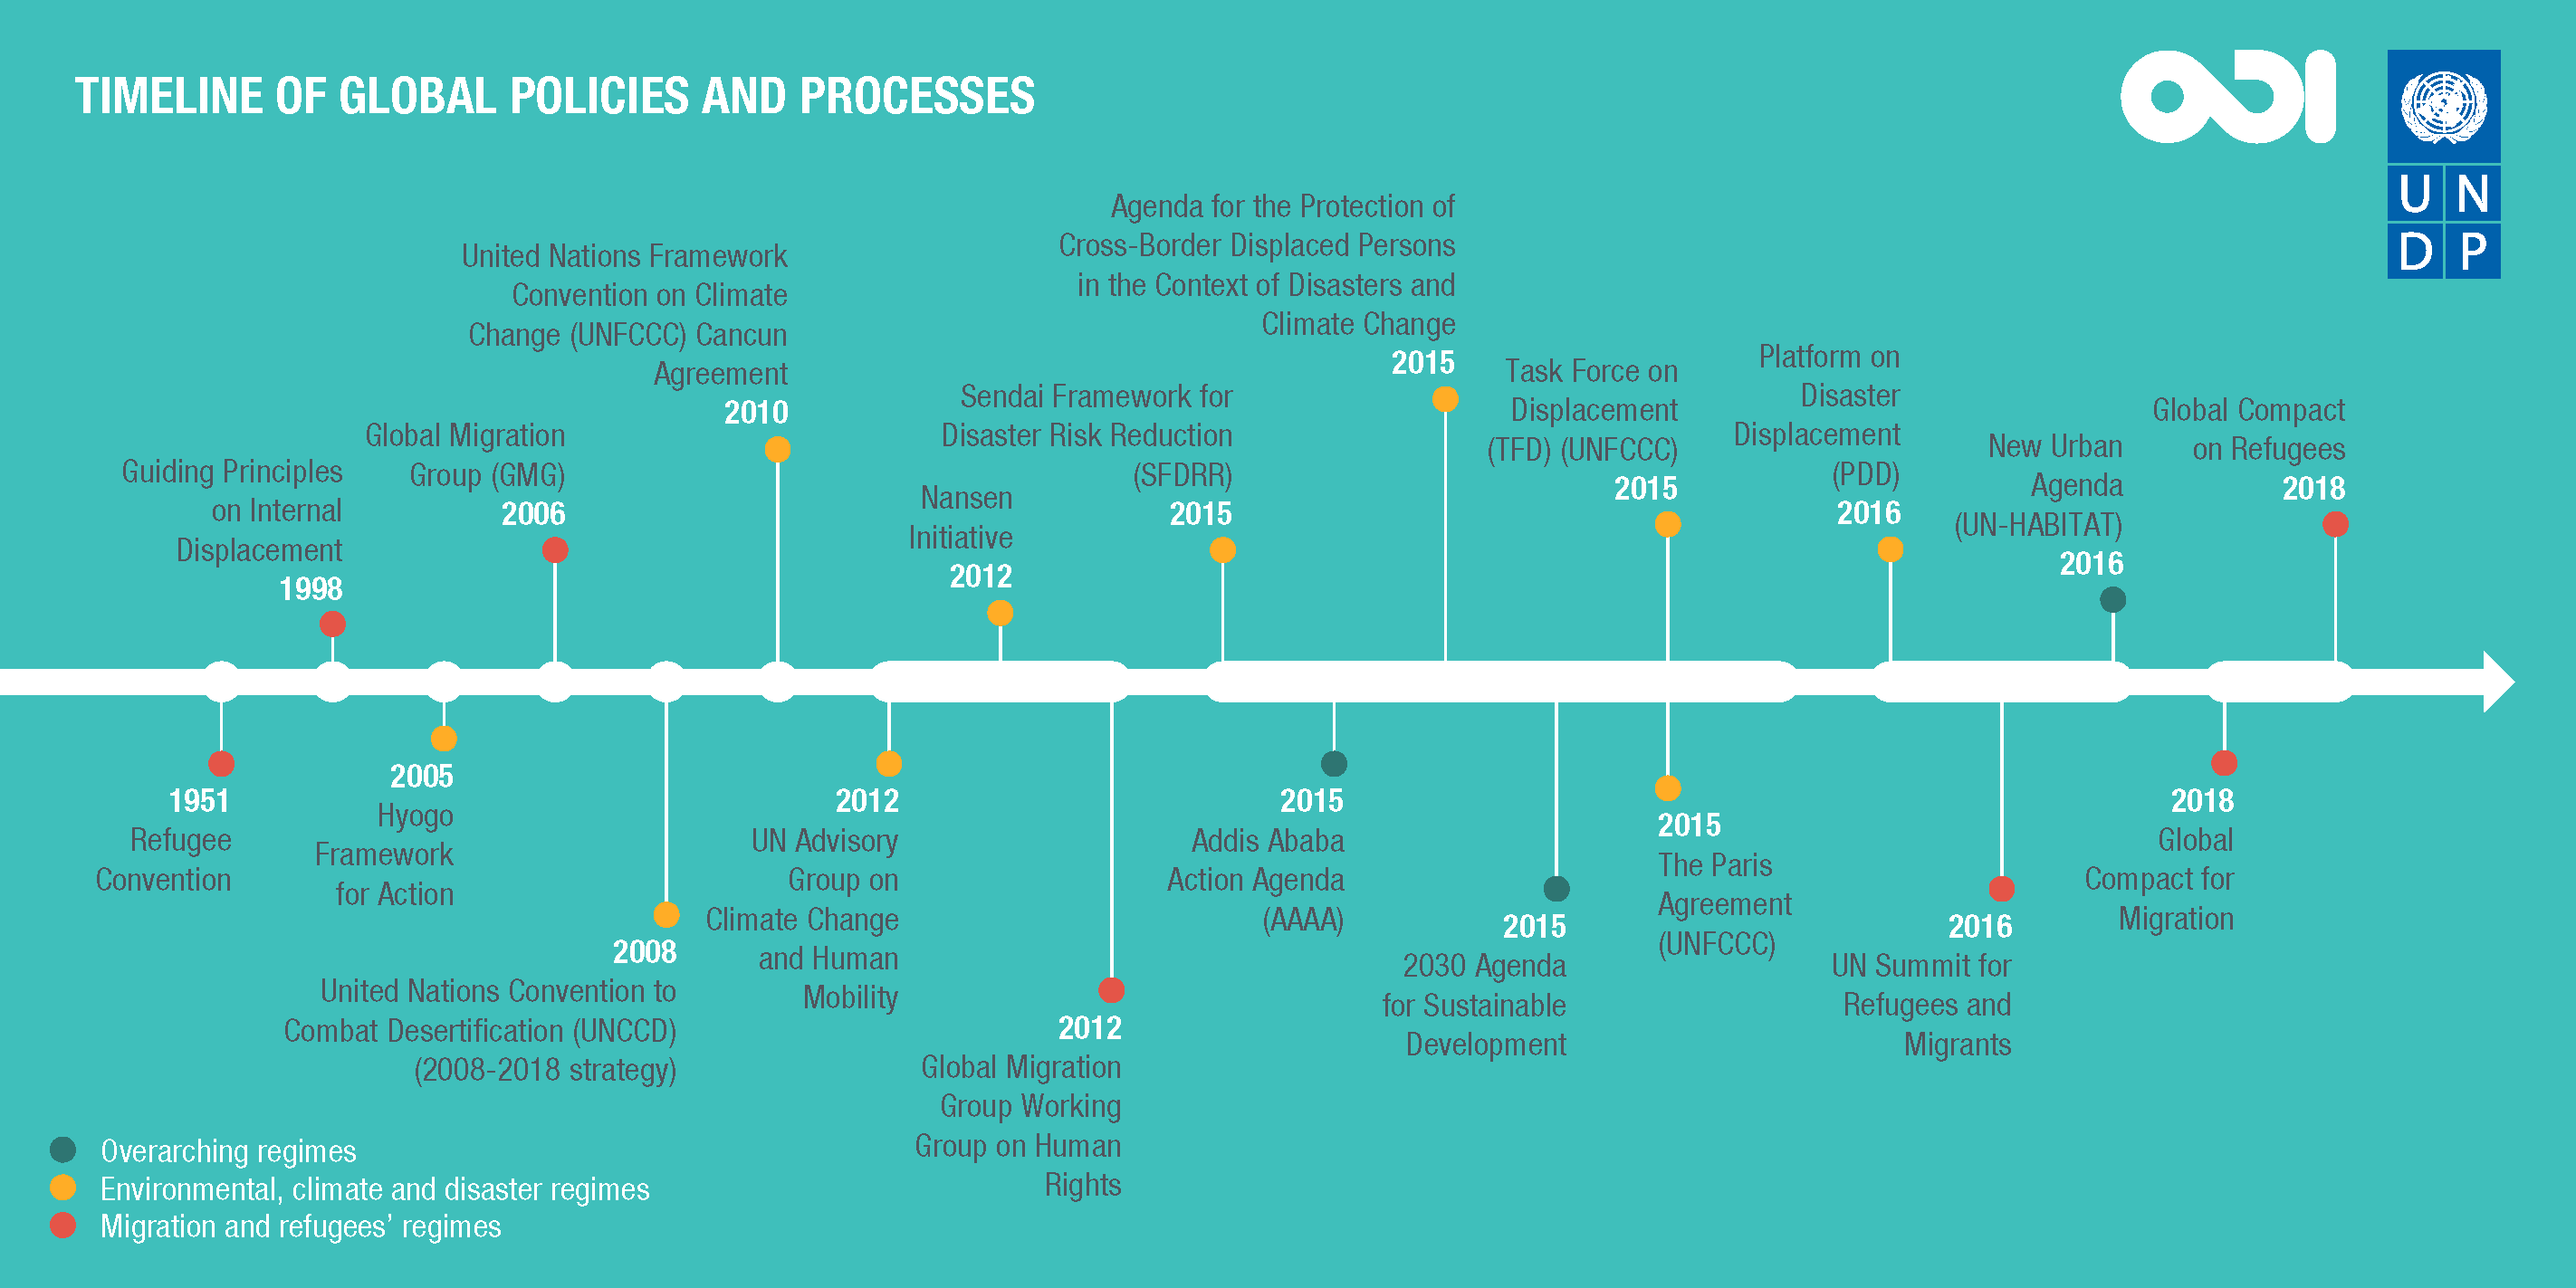 Timeline of global policies and processes